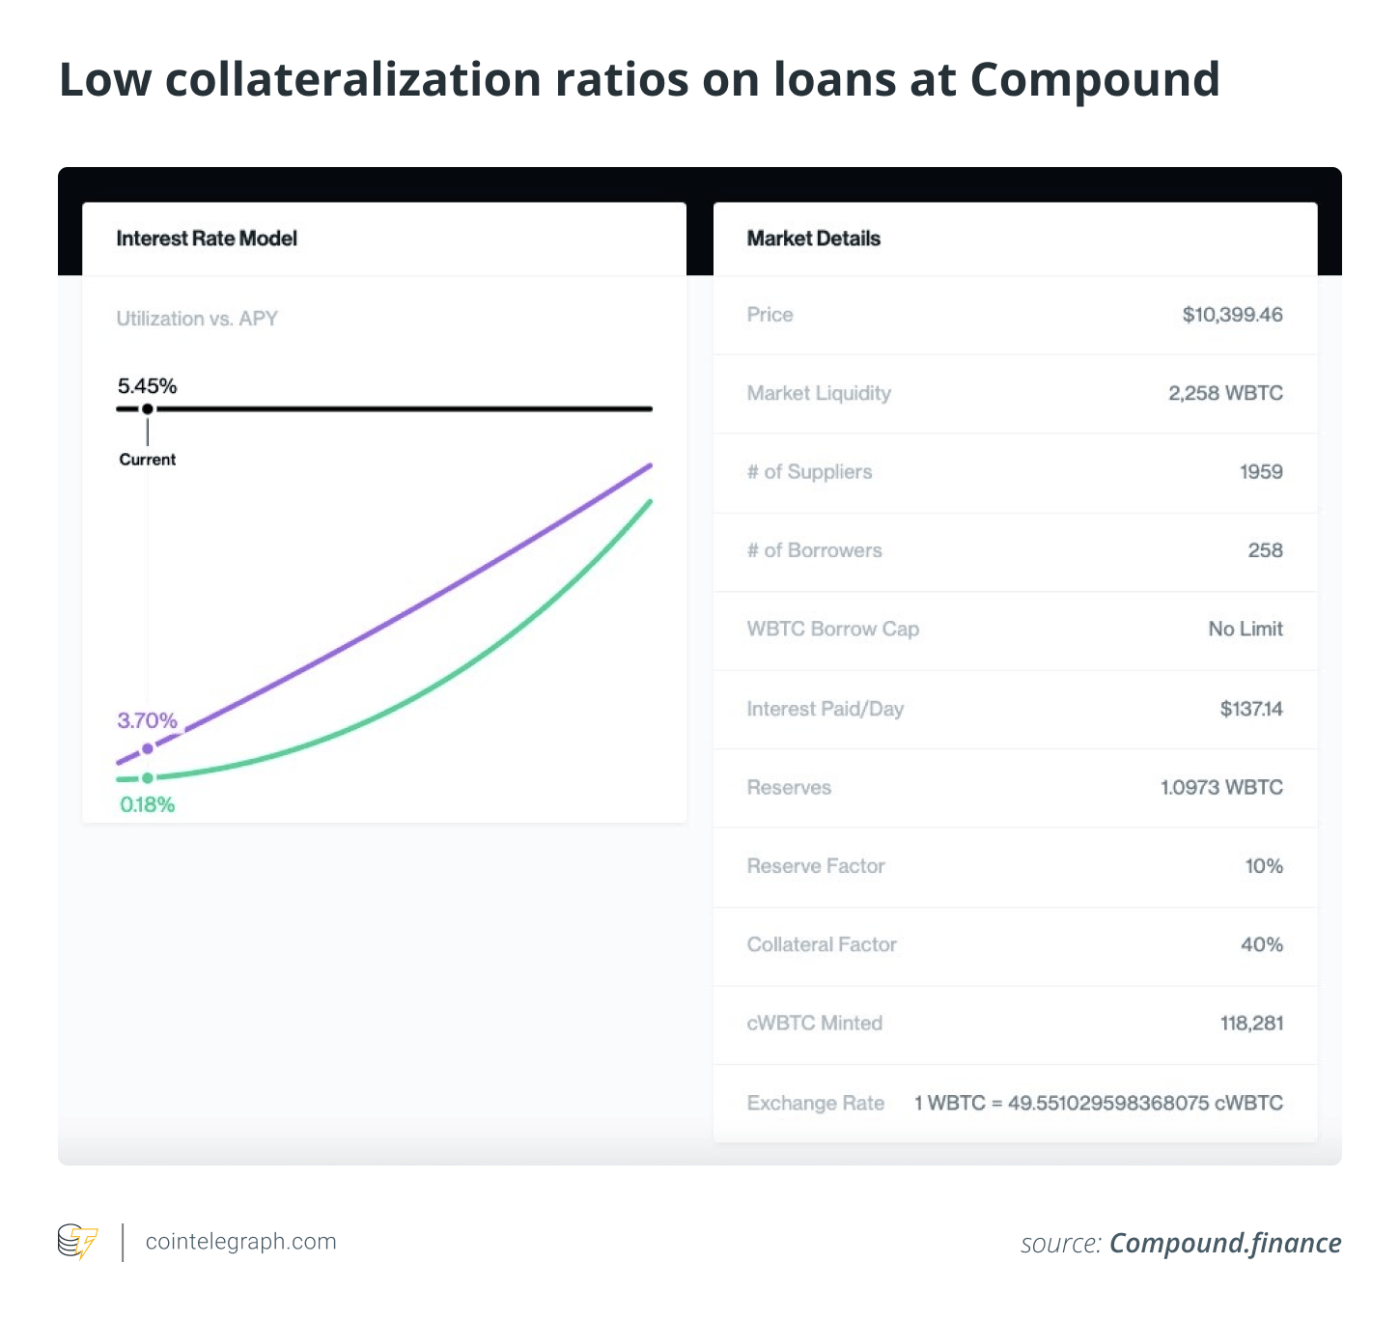 Low collateralization ratios on loans at Compound